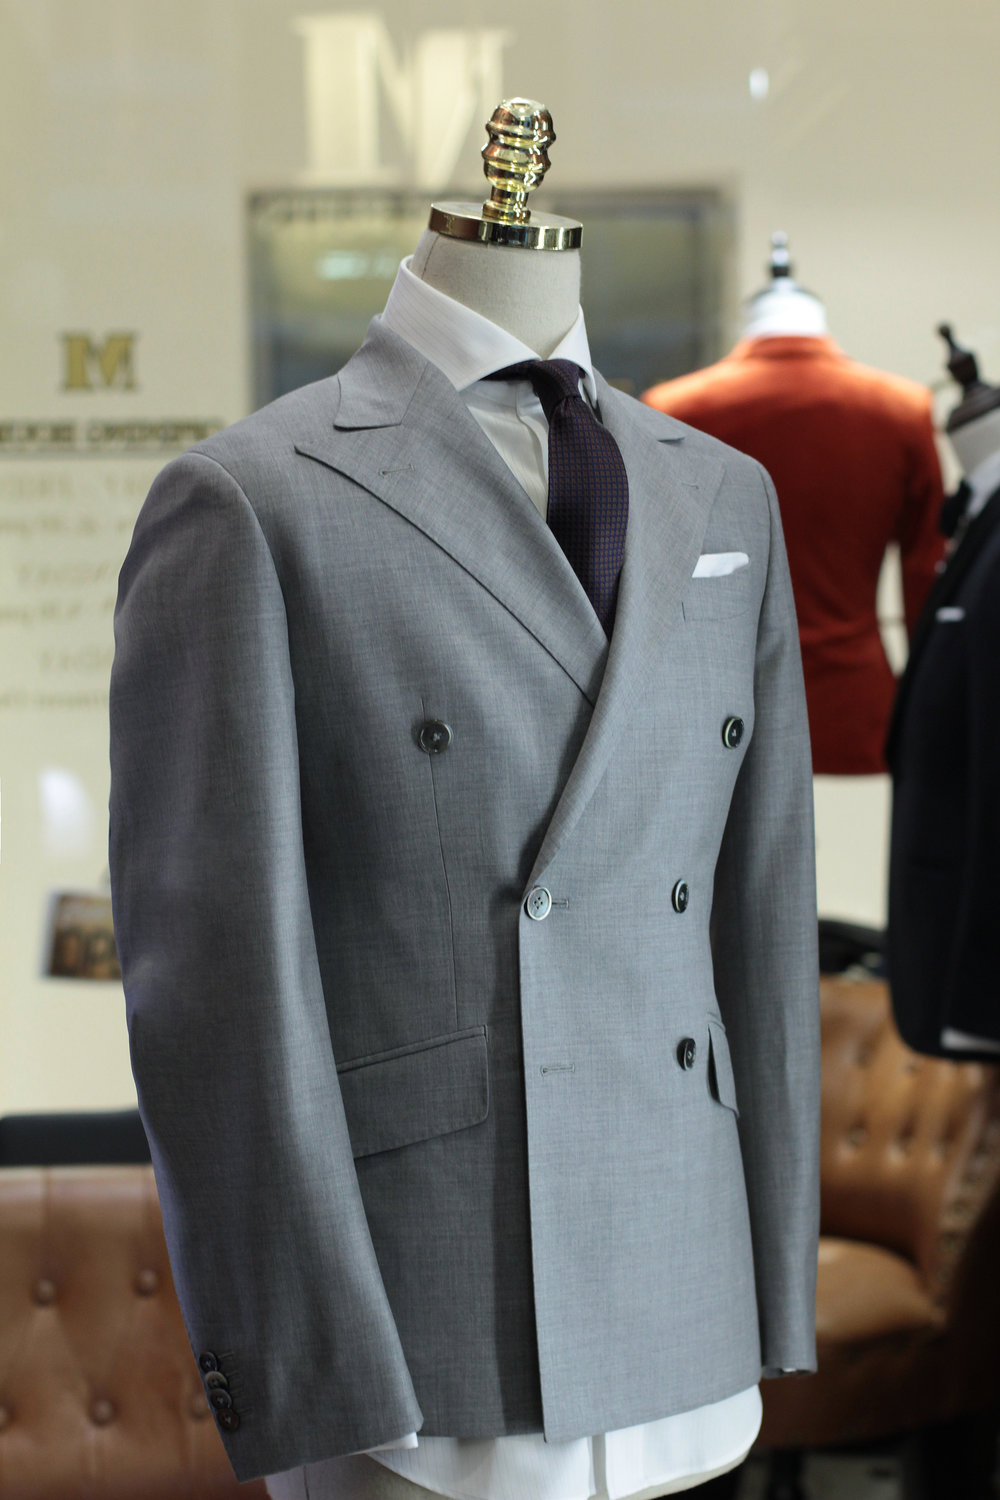 Hounds Made Suits Tailor singapore suits bespoke made to measure Side view.JPG